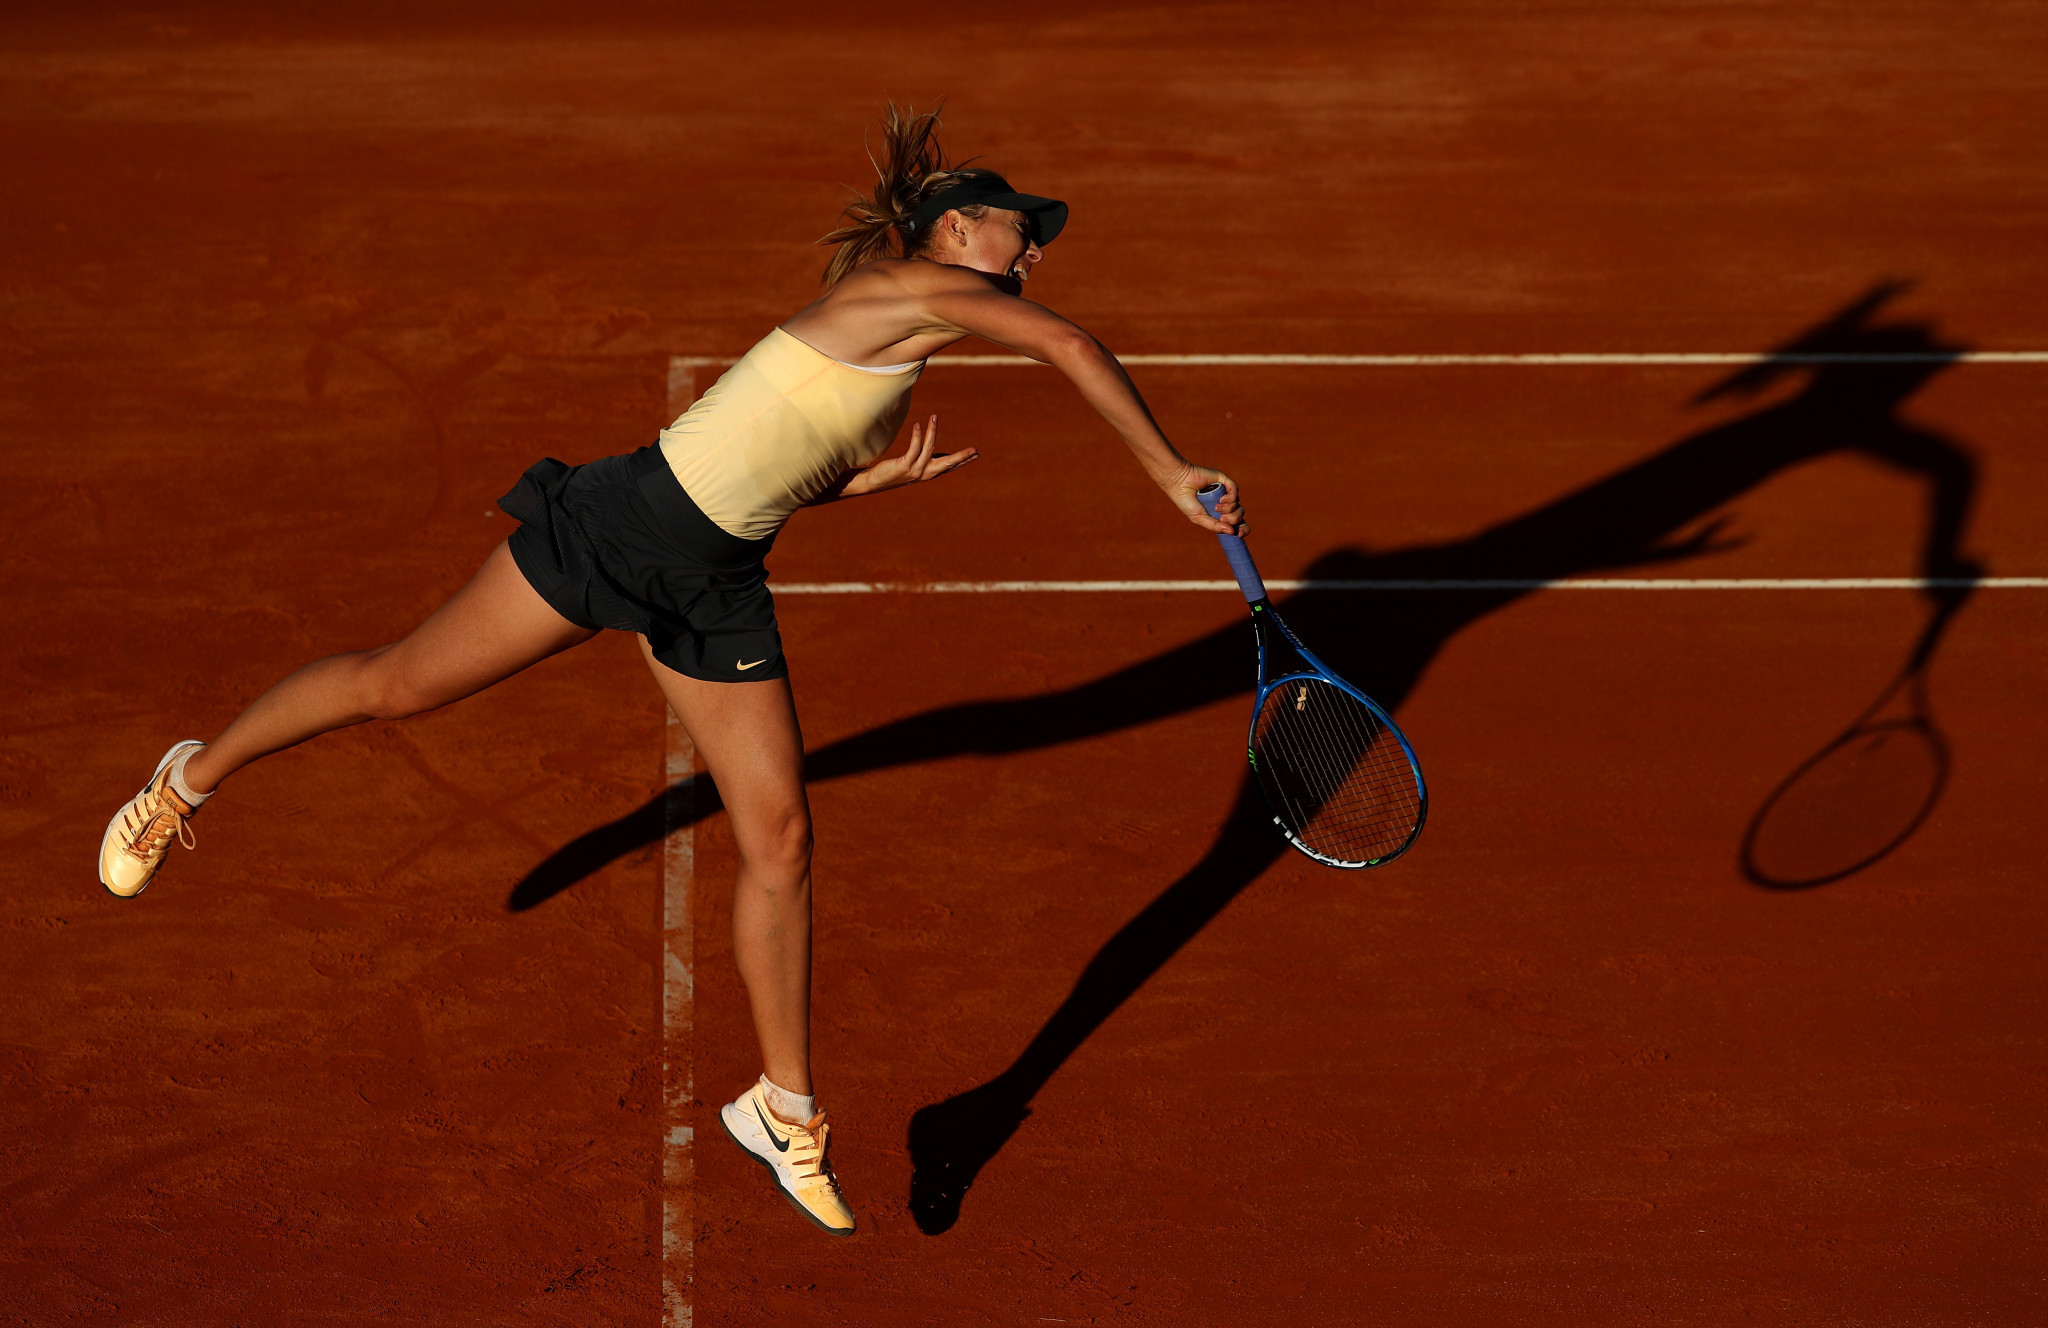 Sharapova emerges triumphant from close encounter at Italian Open